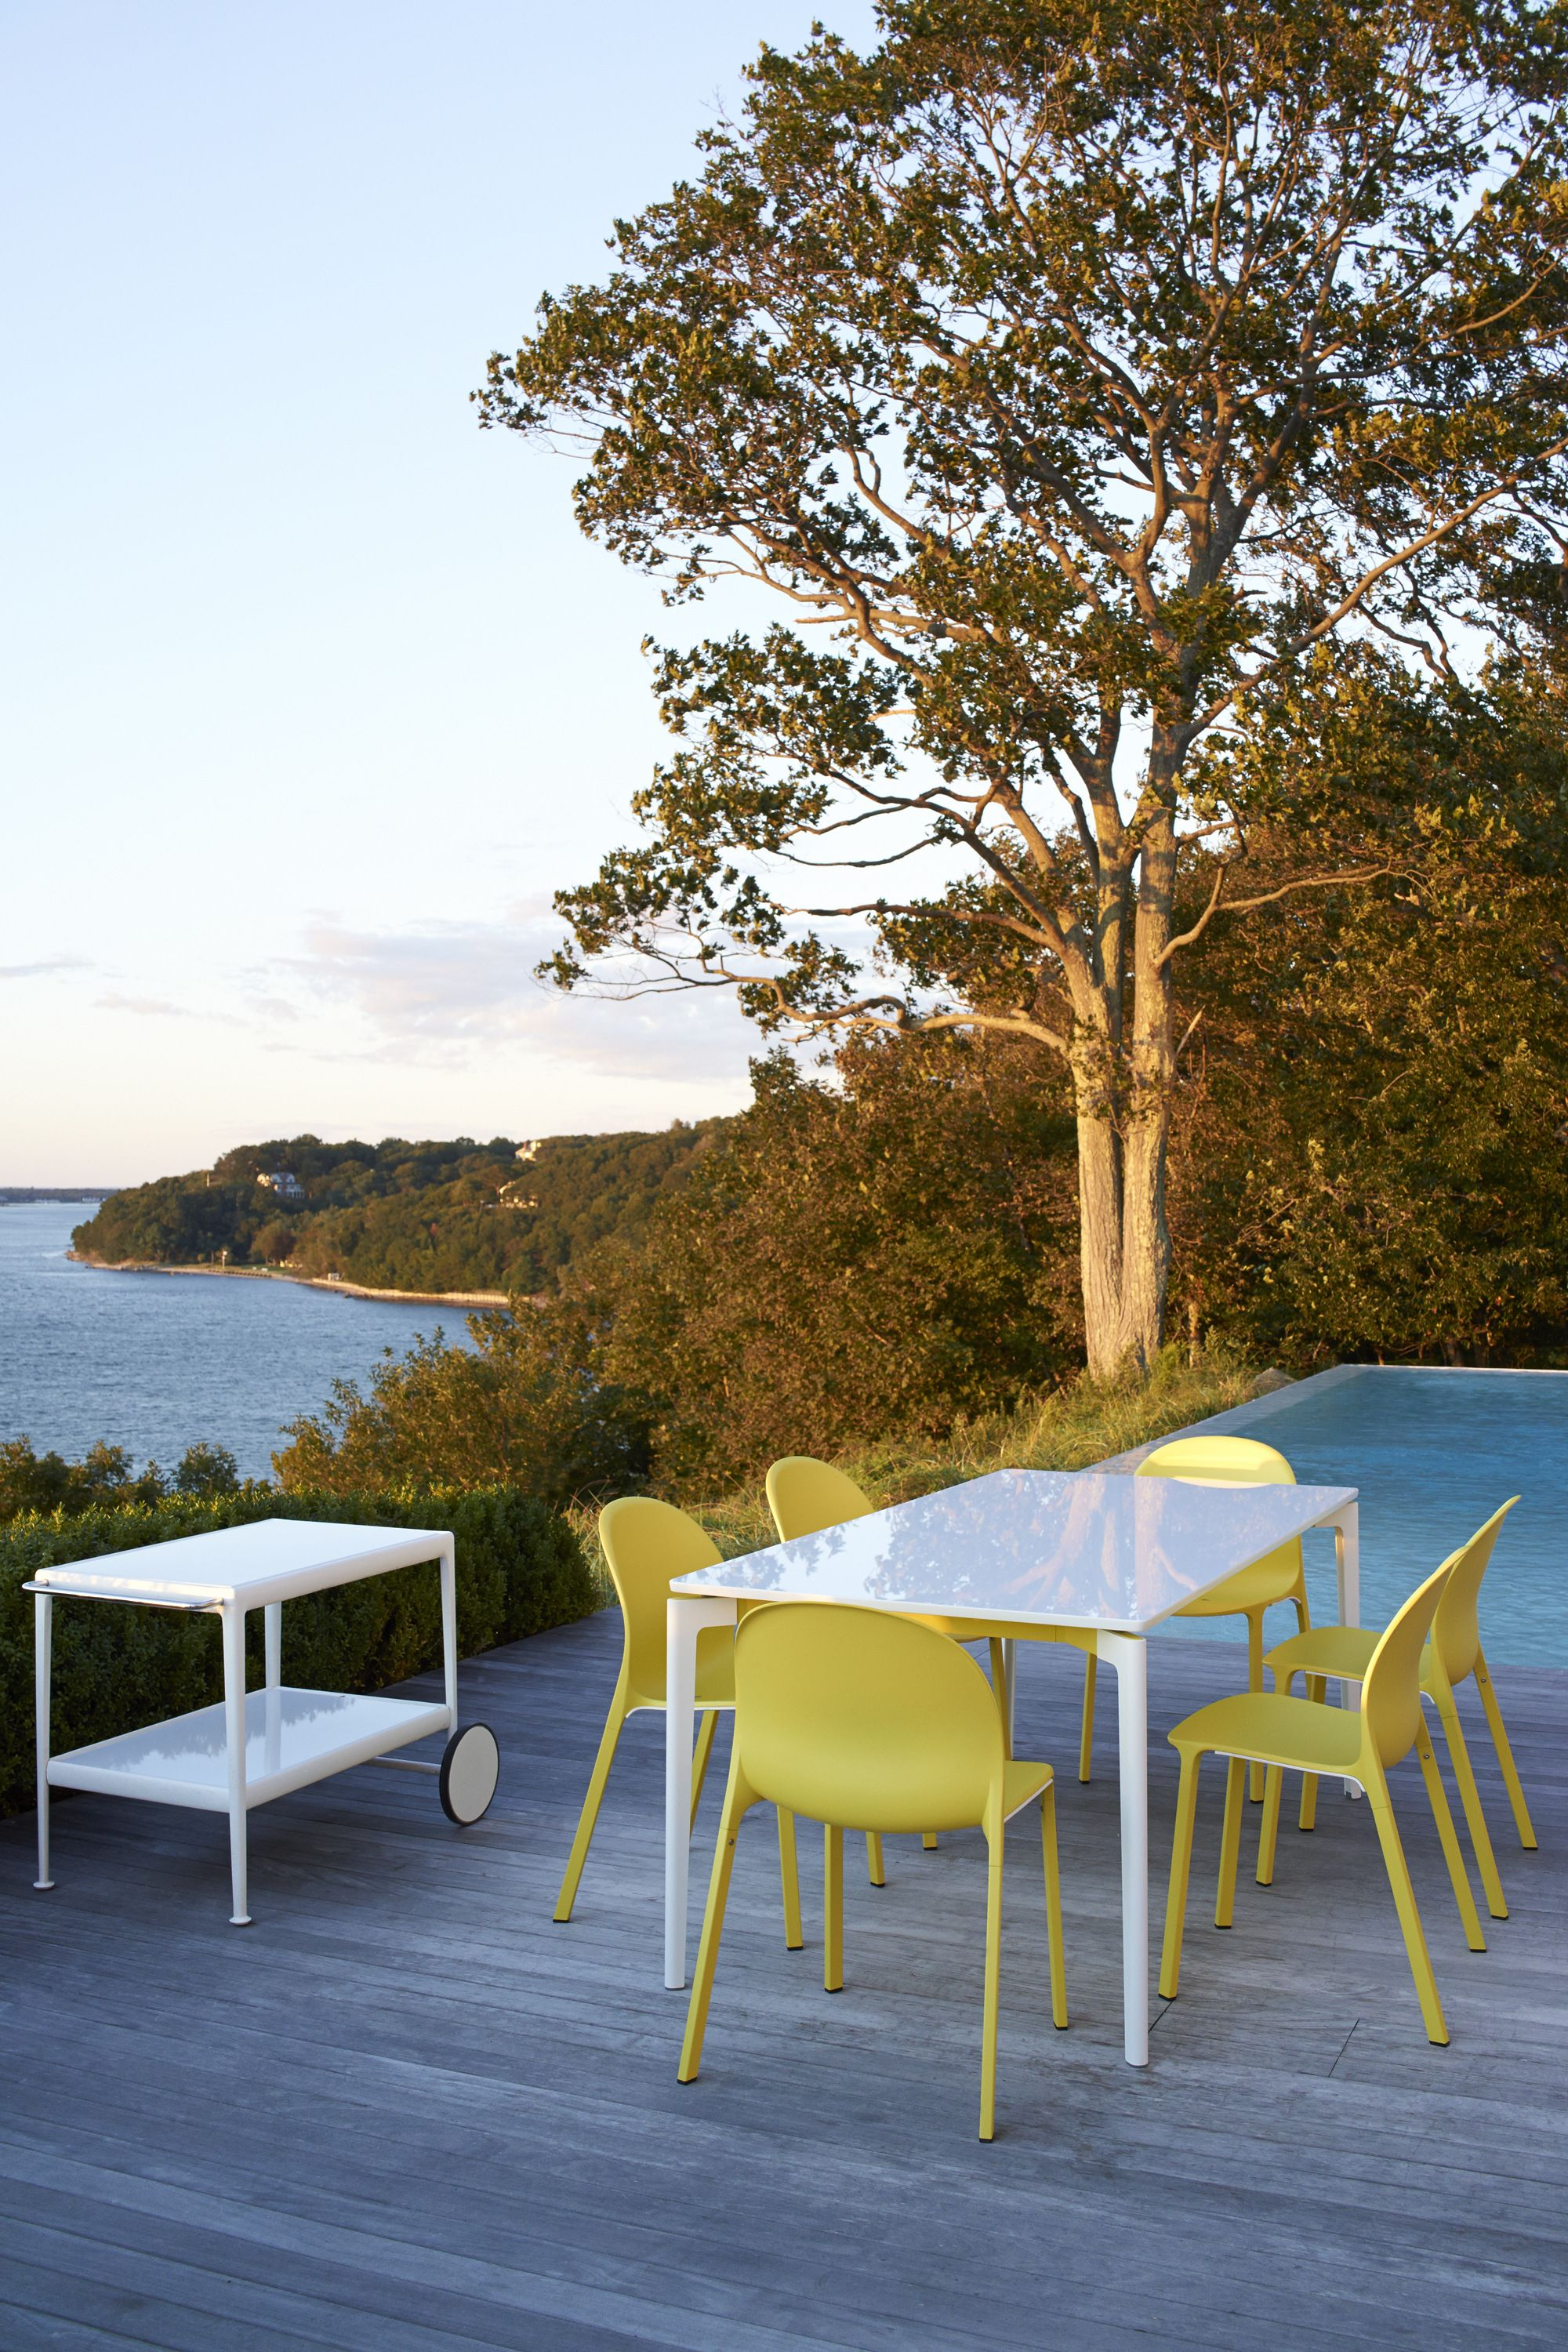 Take it outside with colorful and low maintenance dining options like the Stromborg Table and Olivares Aluminum chairs. Embrace that summer breeze while dining with your favorite friends and family.